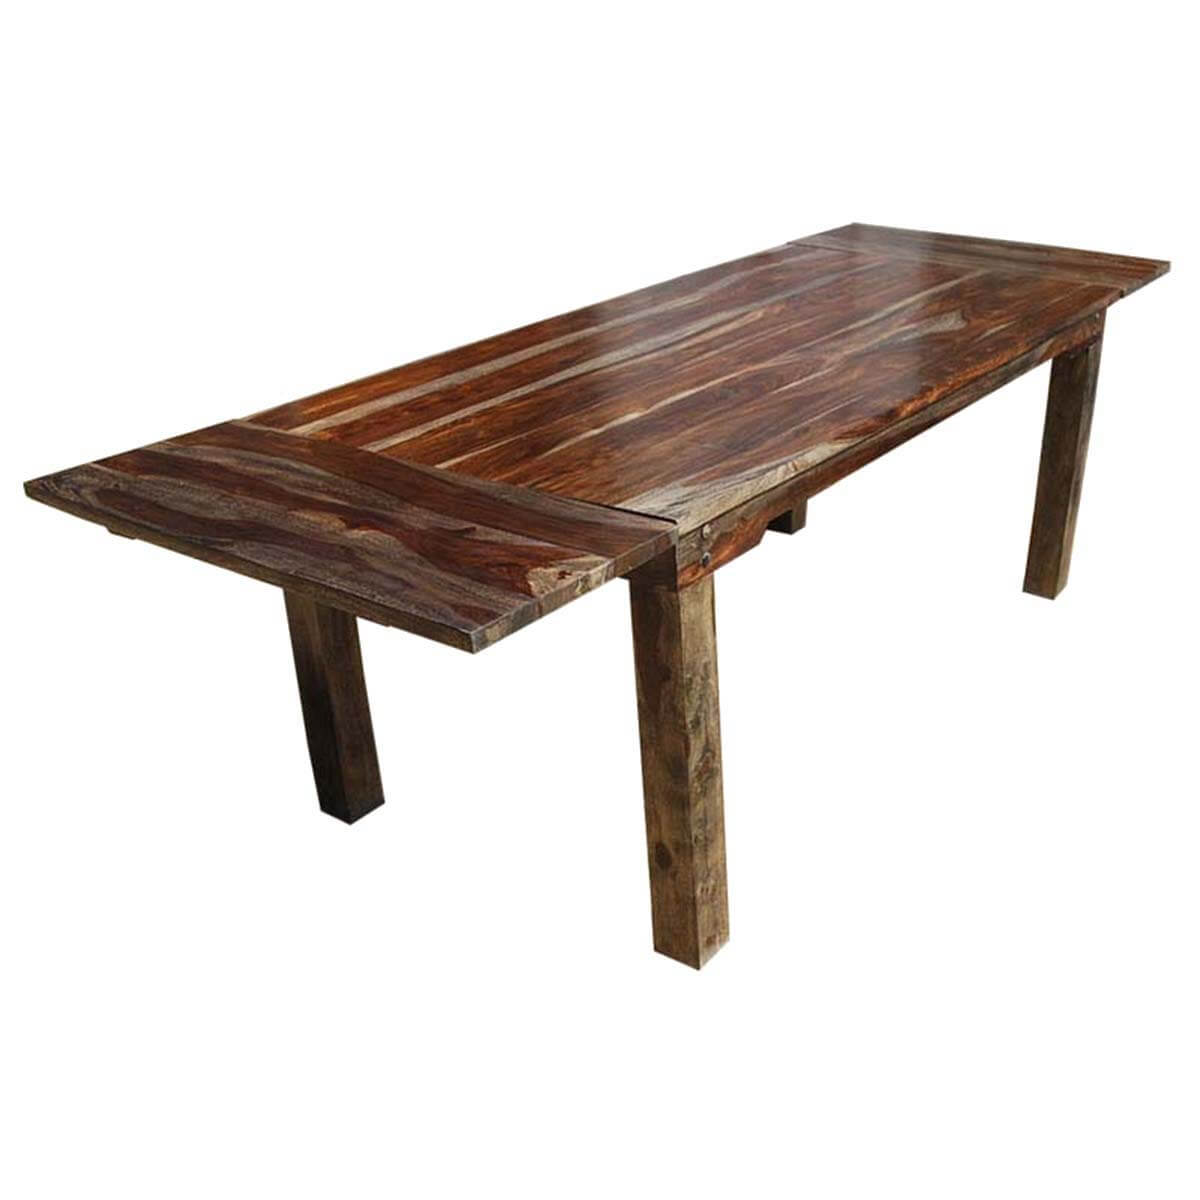 Rustic large cariboo dining table w extensions for Extension dining table